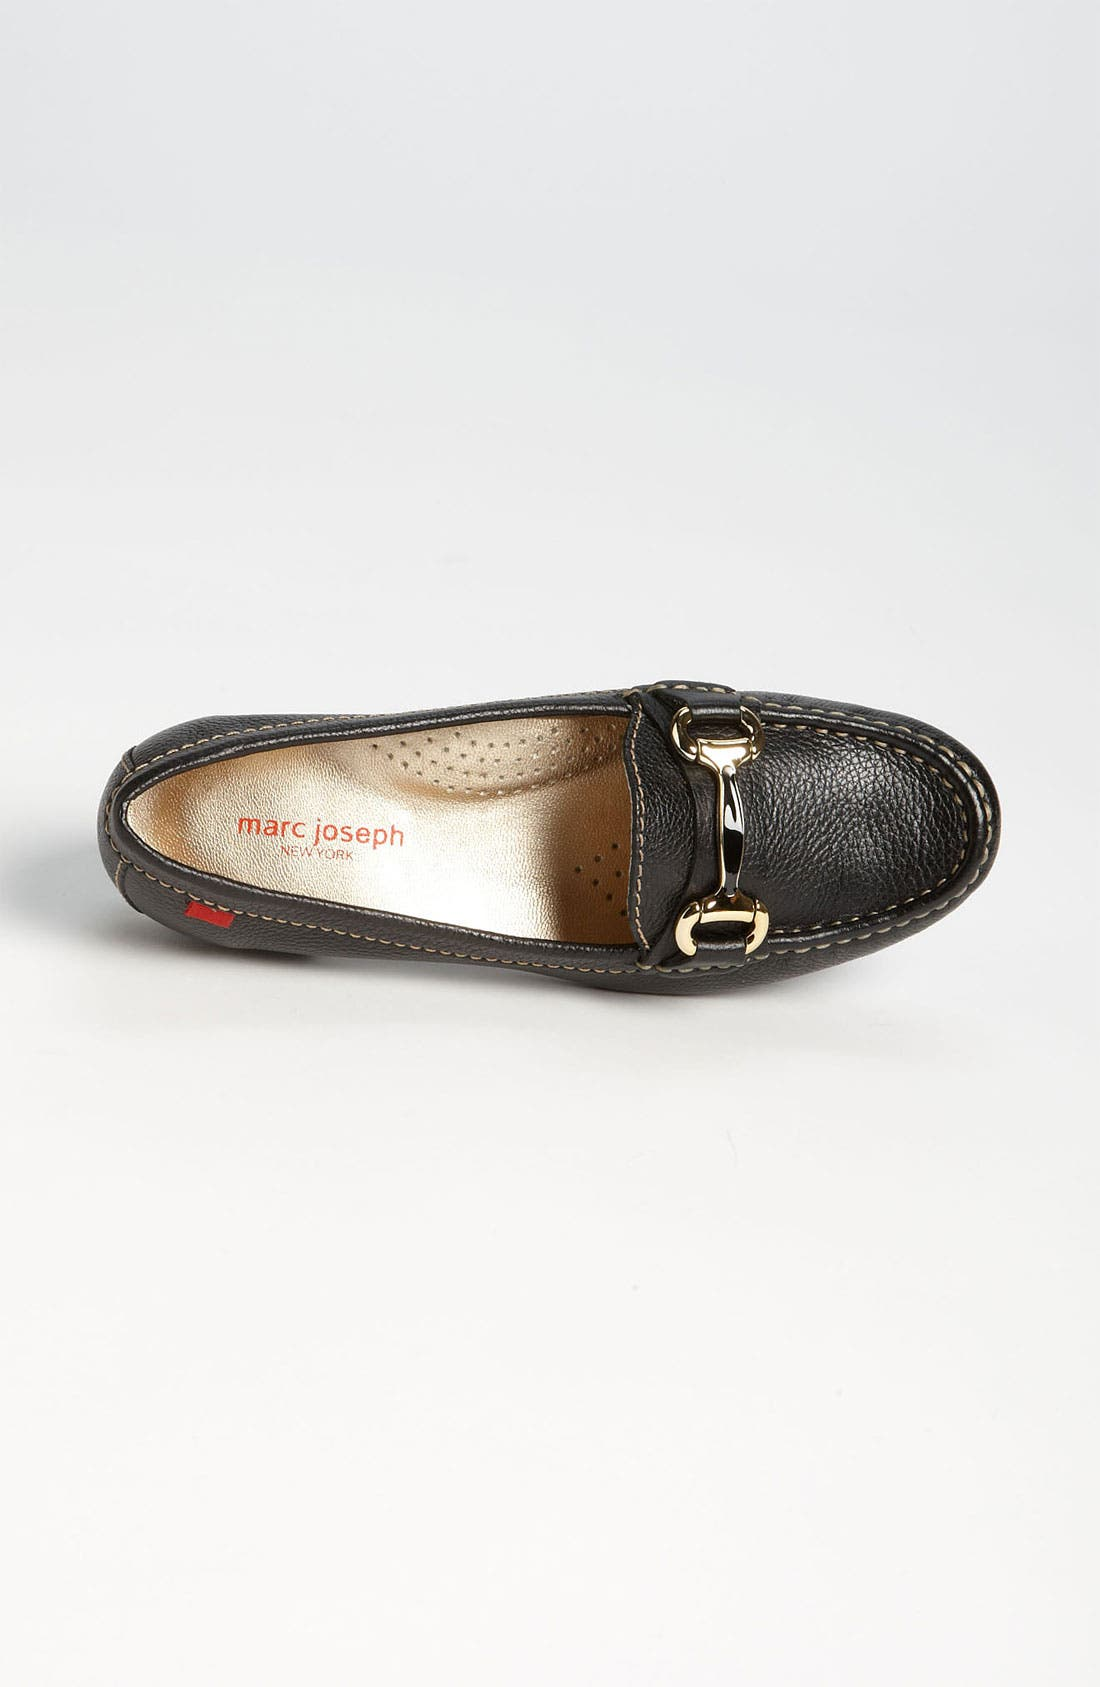 MARC JOSEPH NEW YORK, 'Grand St.' Loafer, Alternate thumbnail 4, color, BLACK GRAINY